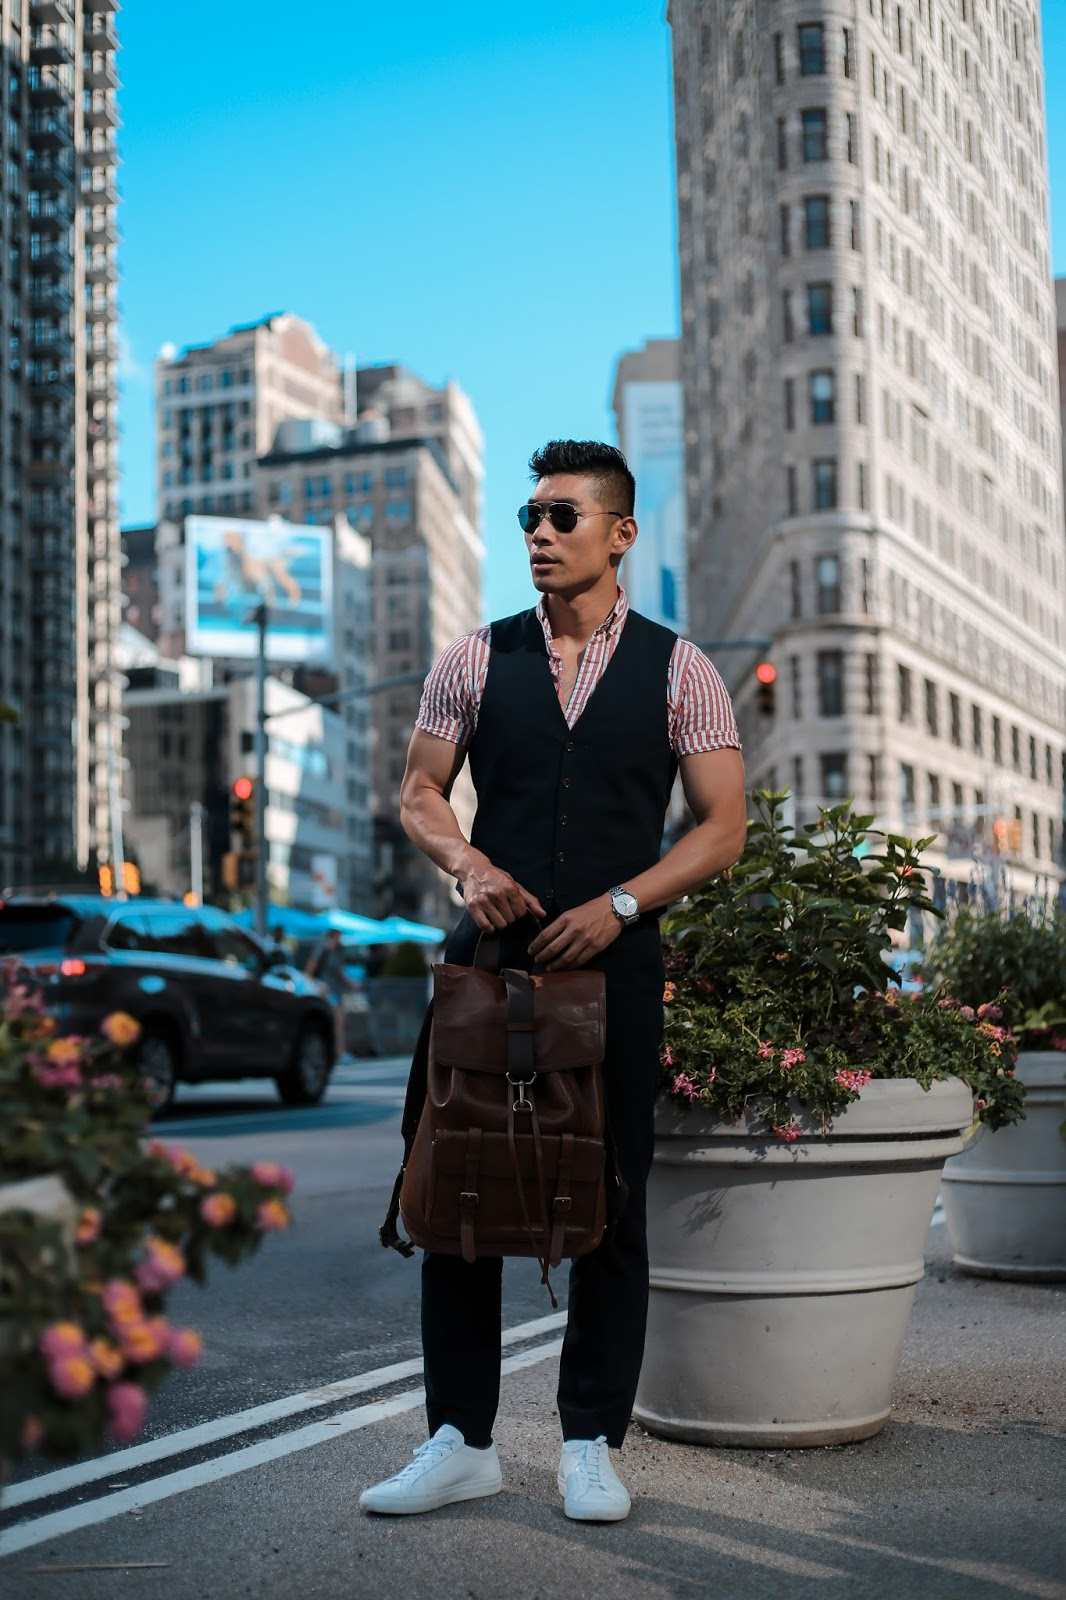 Men's Summer Style, Seersucker, Prada Teddy Sunglasses, Common Project Sneakers, Coach Backpack, Menswear Levitate Style, Leo Chan